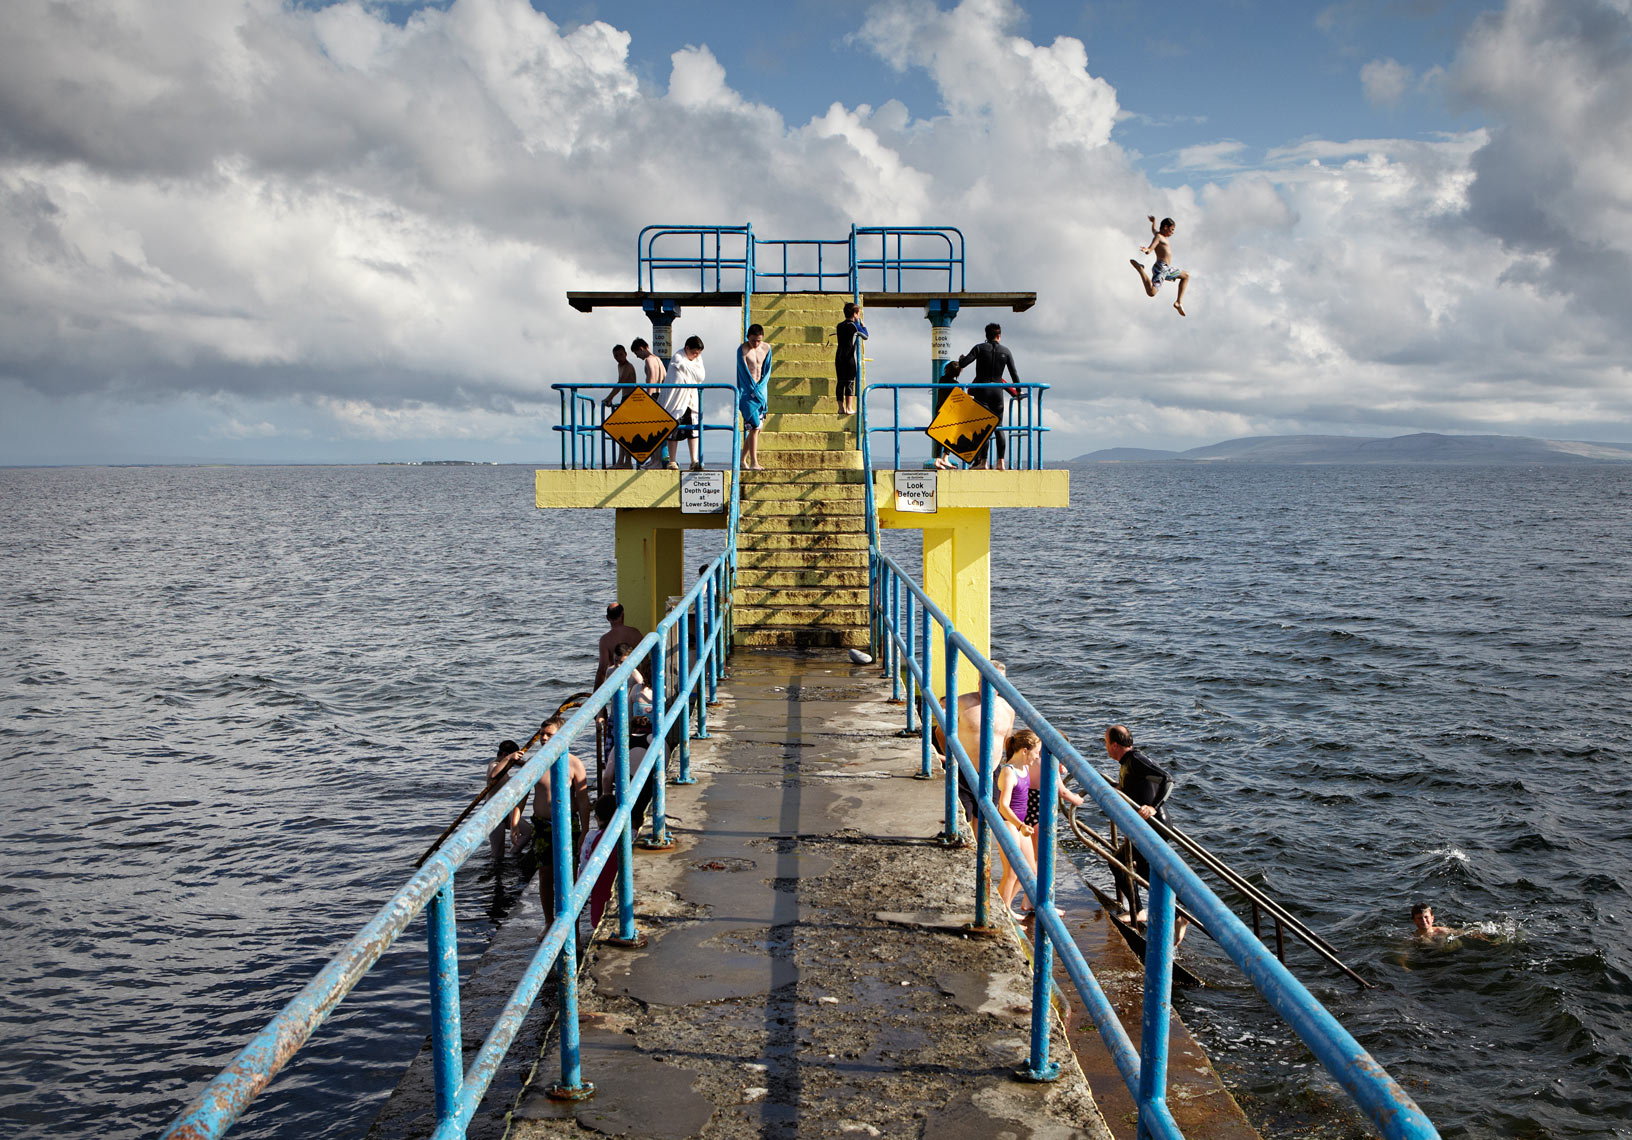 Black Rock diving board, Salthill, Galway